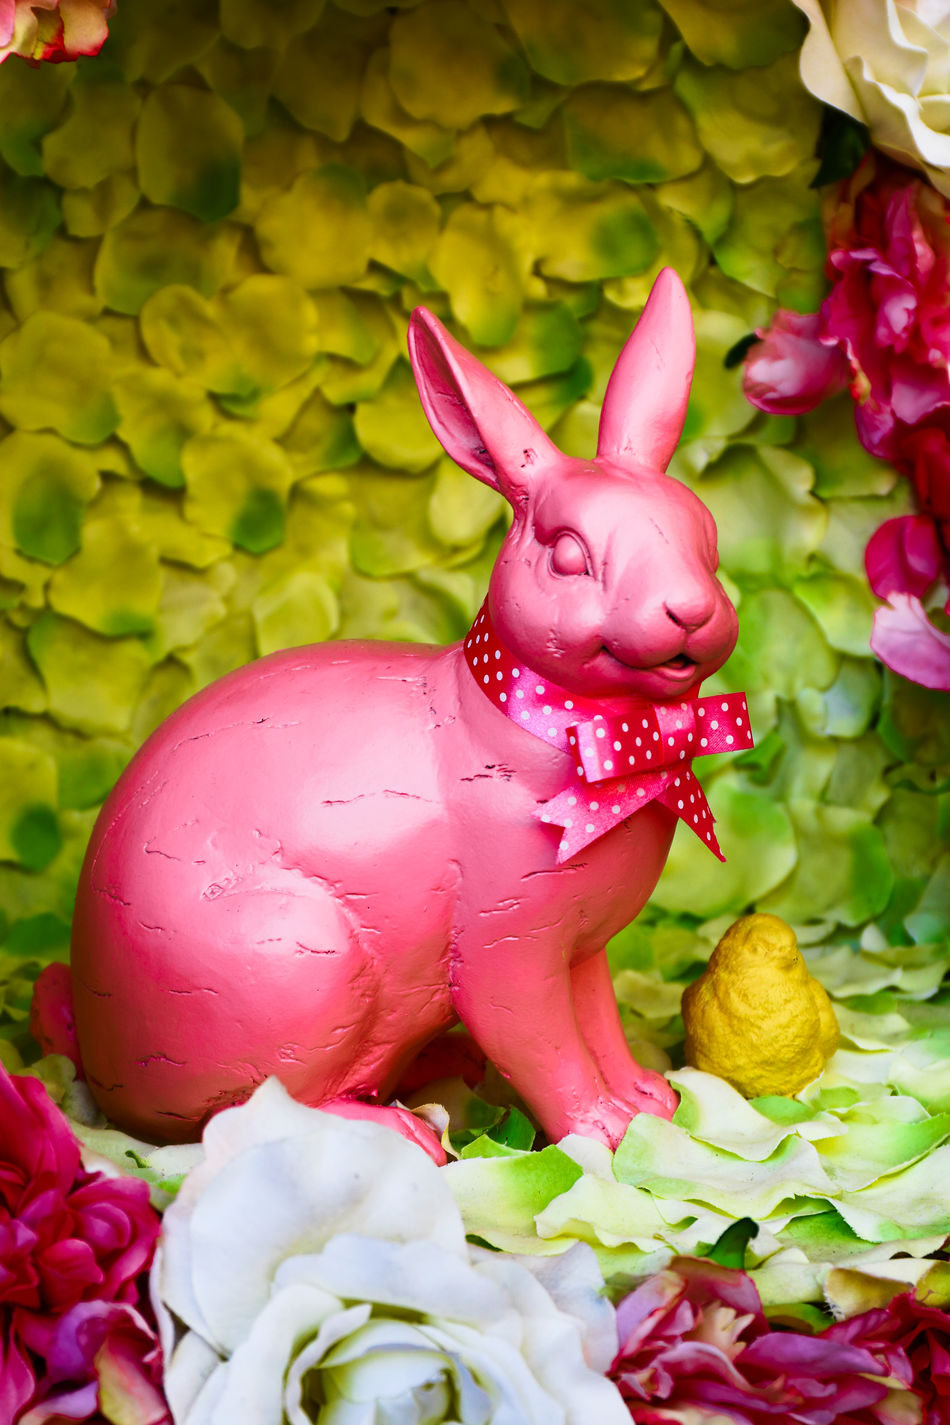 Pink rabbit in green grass in spring 43 Golden Moments Easter Easter Easter Bunny Easter Ready Easter Sunday Flower Freshness Pink Rabbit Season  Seasonal Seasoning Seasons Seasonscollection Spring Springtime Stockphoto Stockphotography The OO Mission